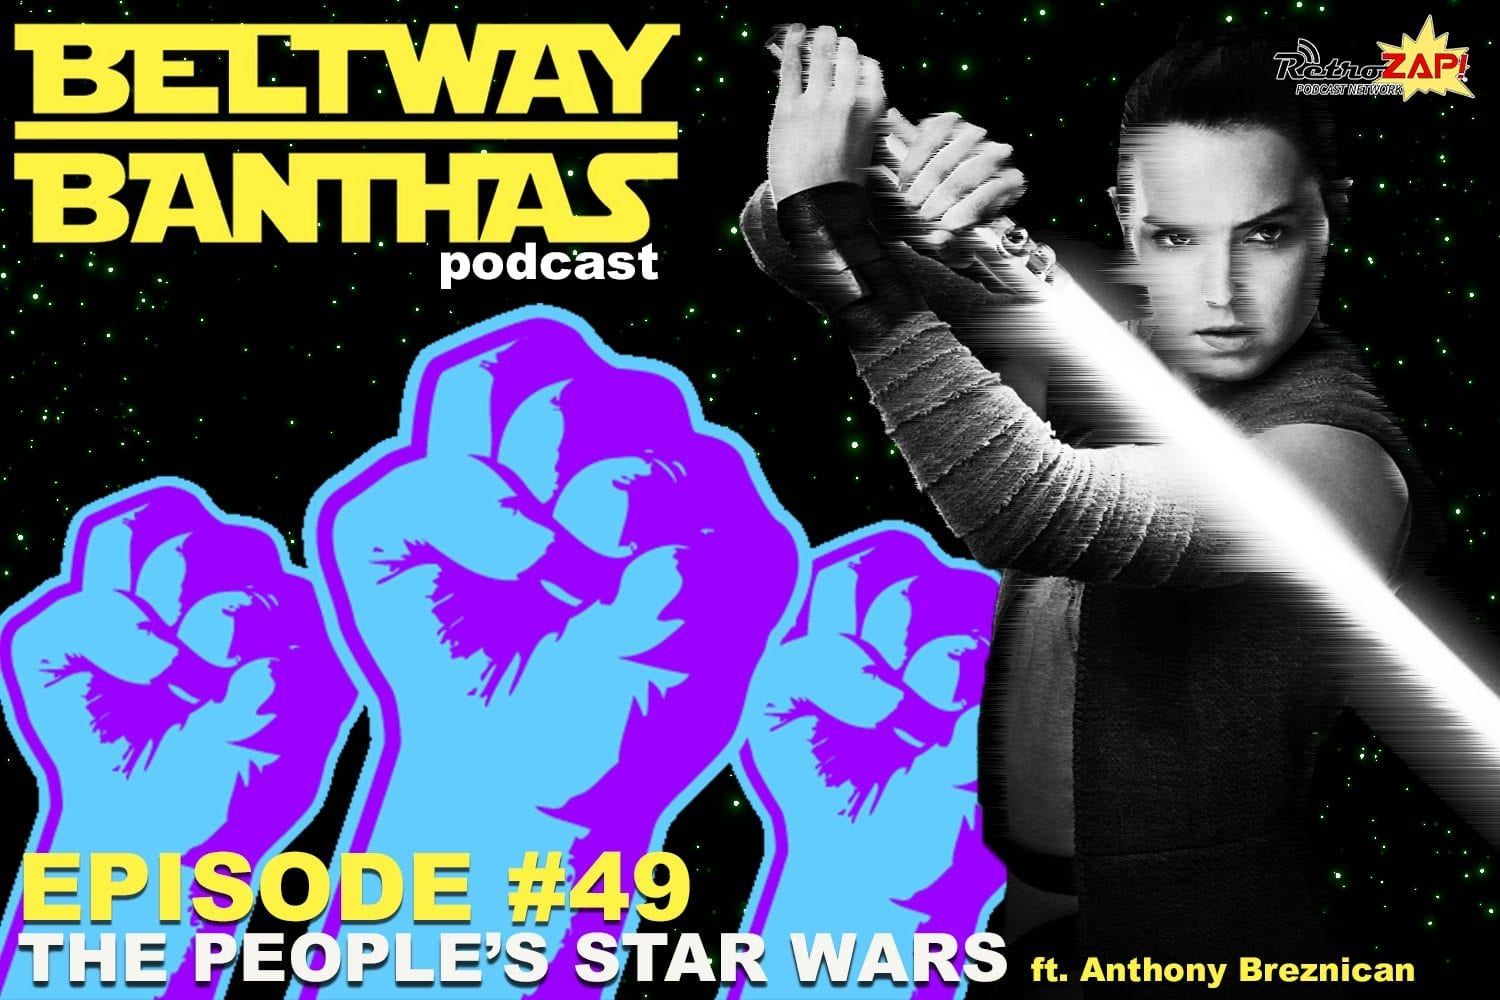 Beltway Banthas #49: The People's Star Wars ft. Anthony Breznican